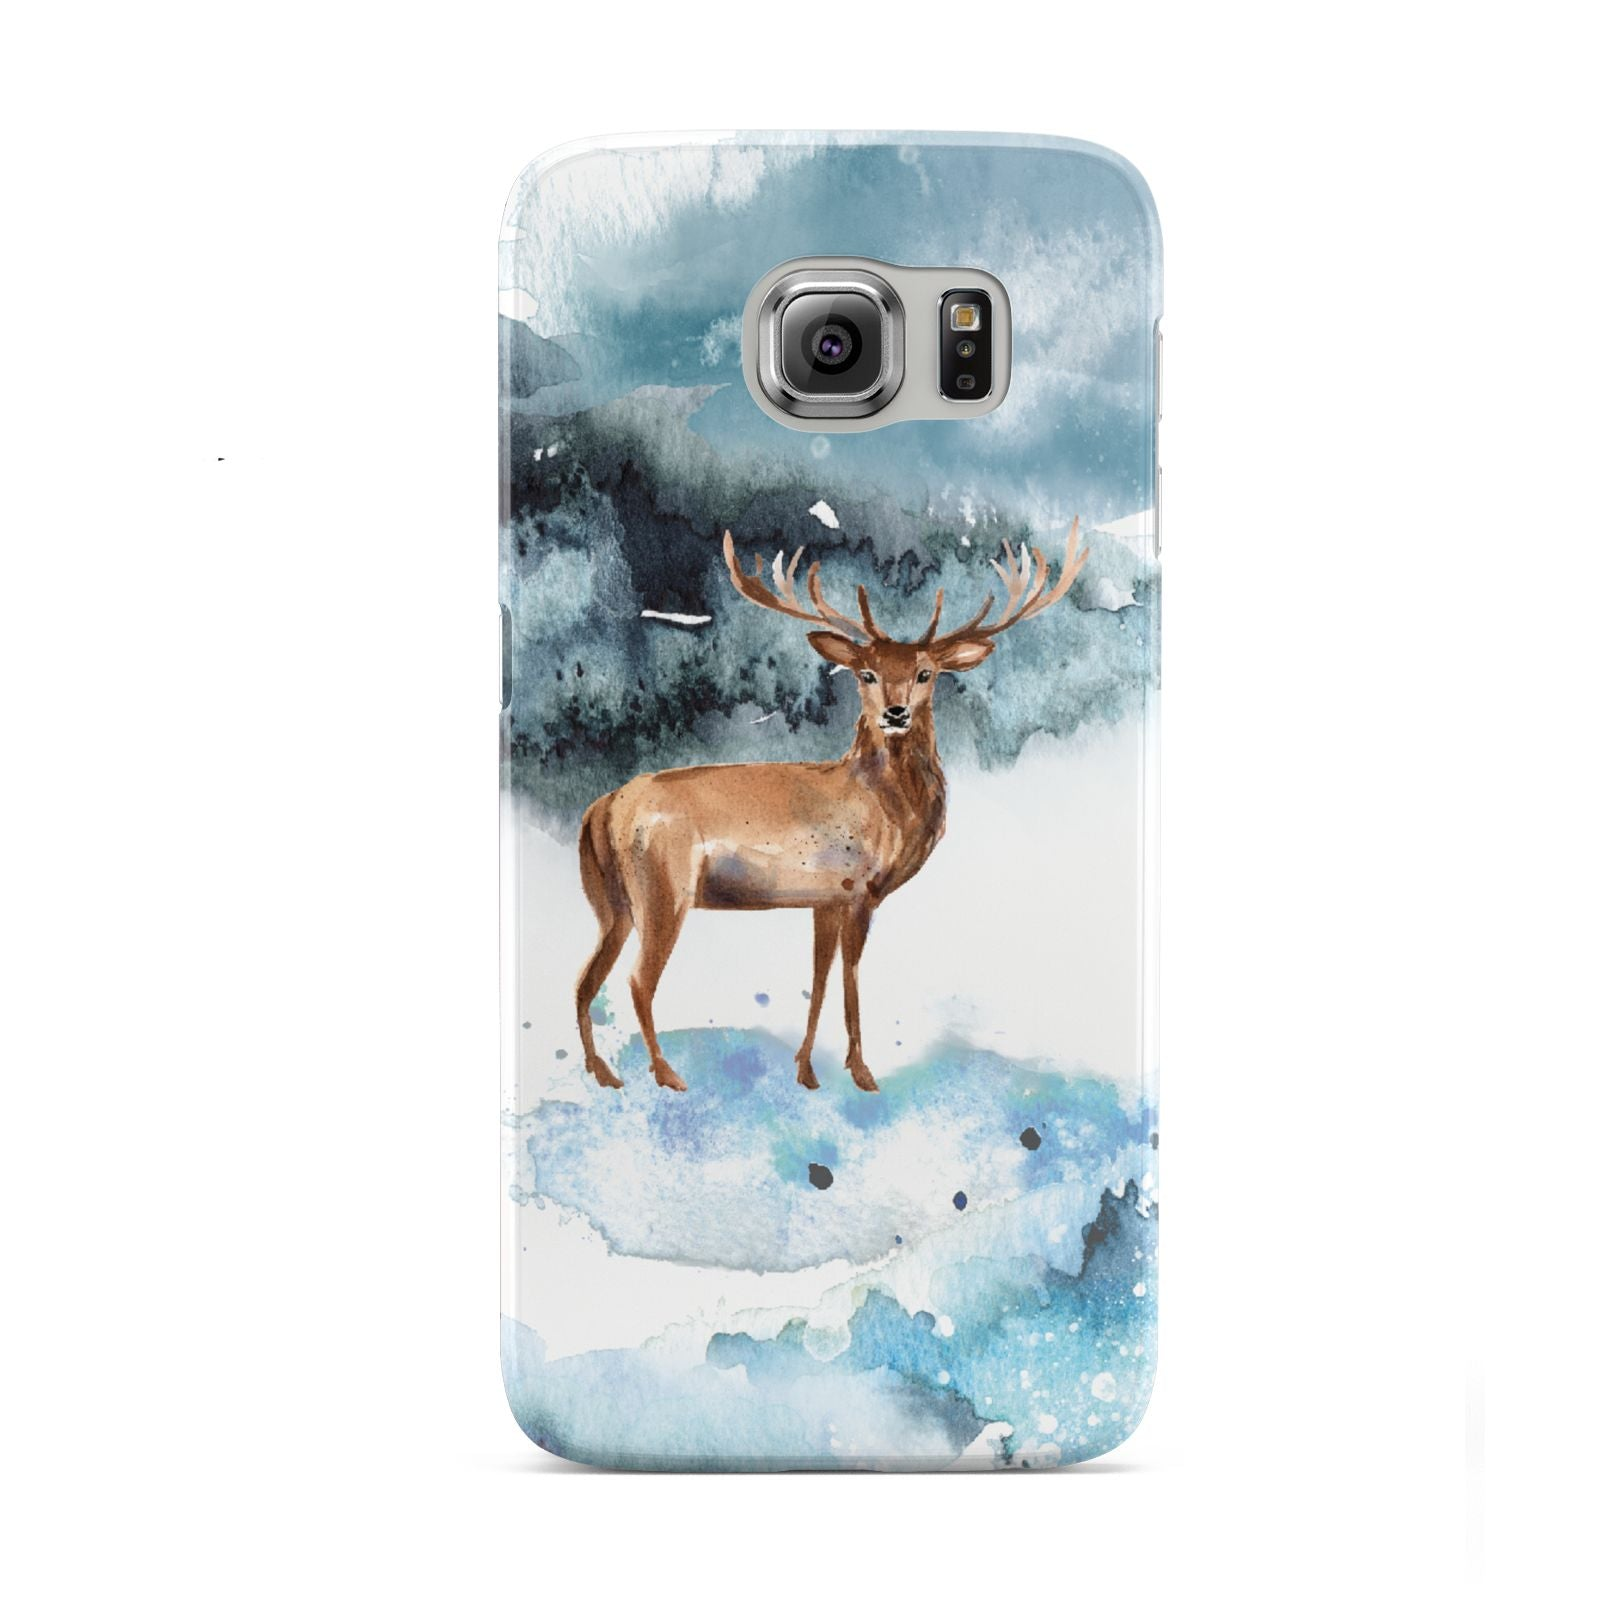 Christmas Winter Stag Samsung Galaxy S6 Case